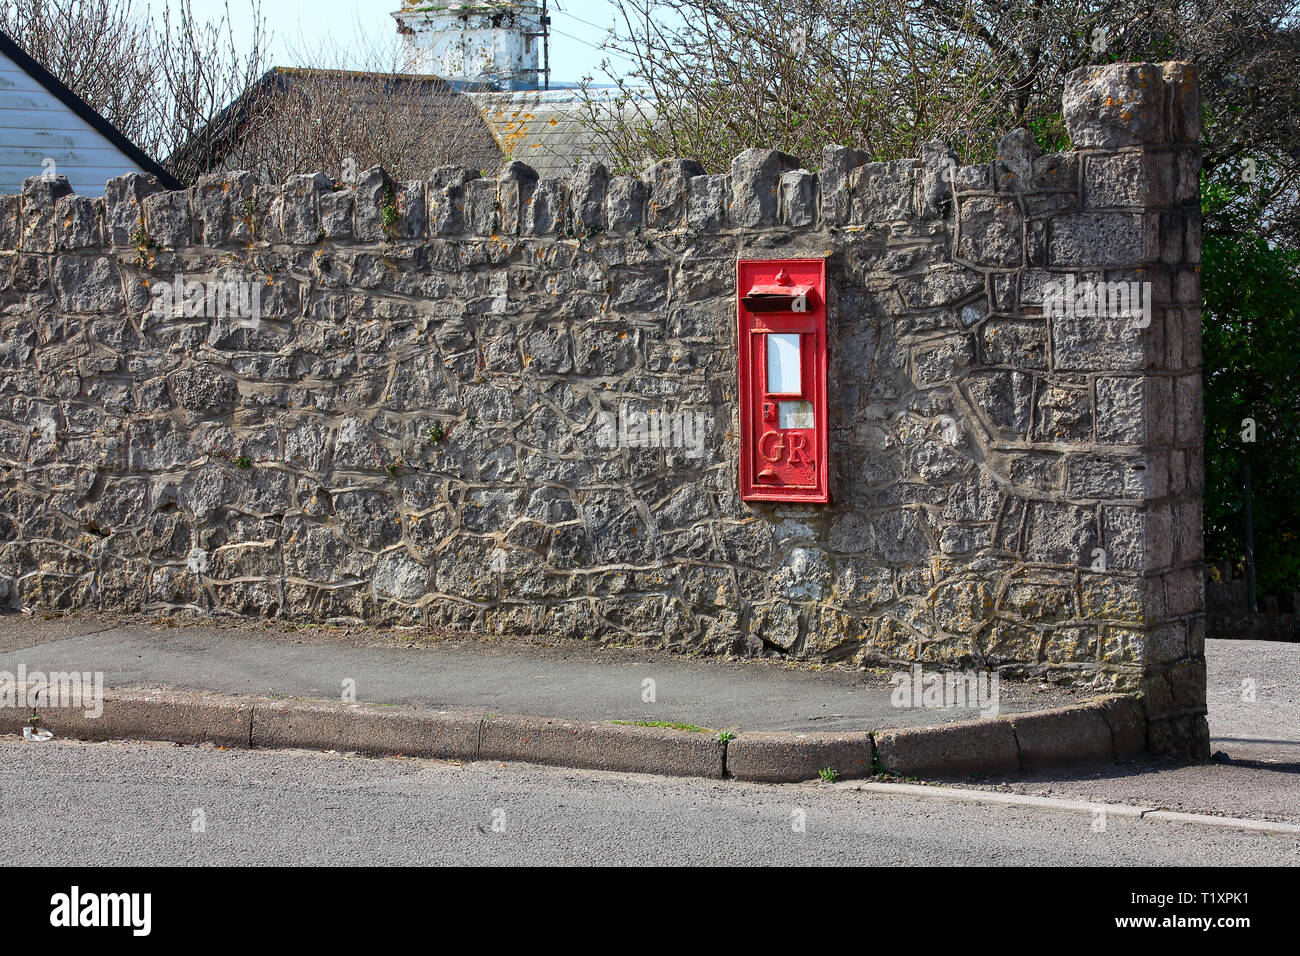 An old King George era letter box embedded in a wall adjacent to the main road through the village, now replaced by a nearby free standing box. - Stock Image